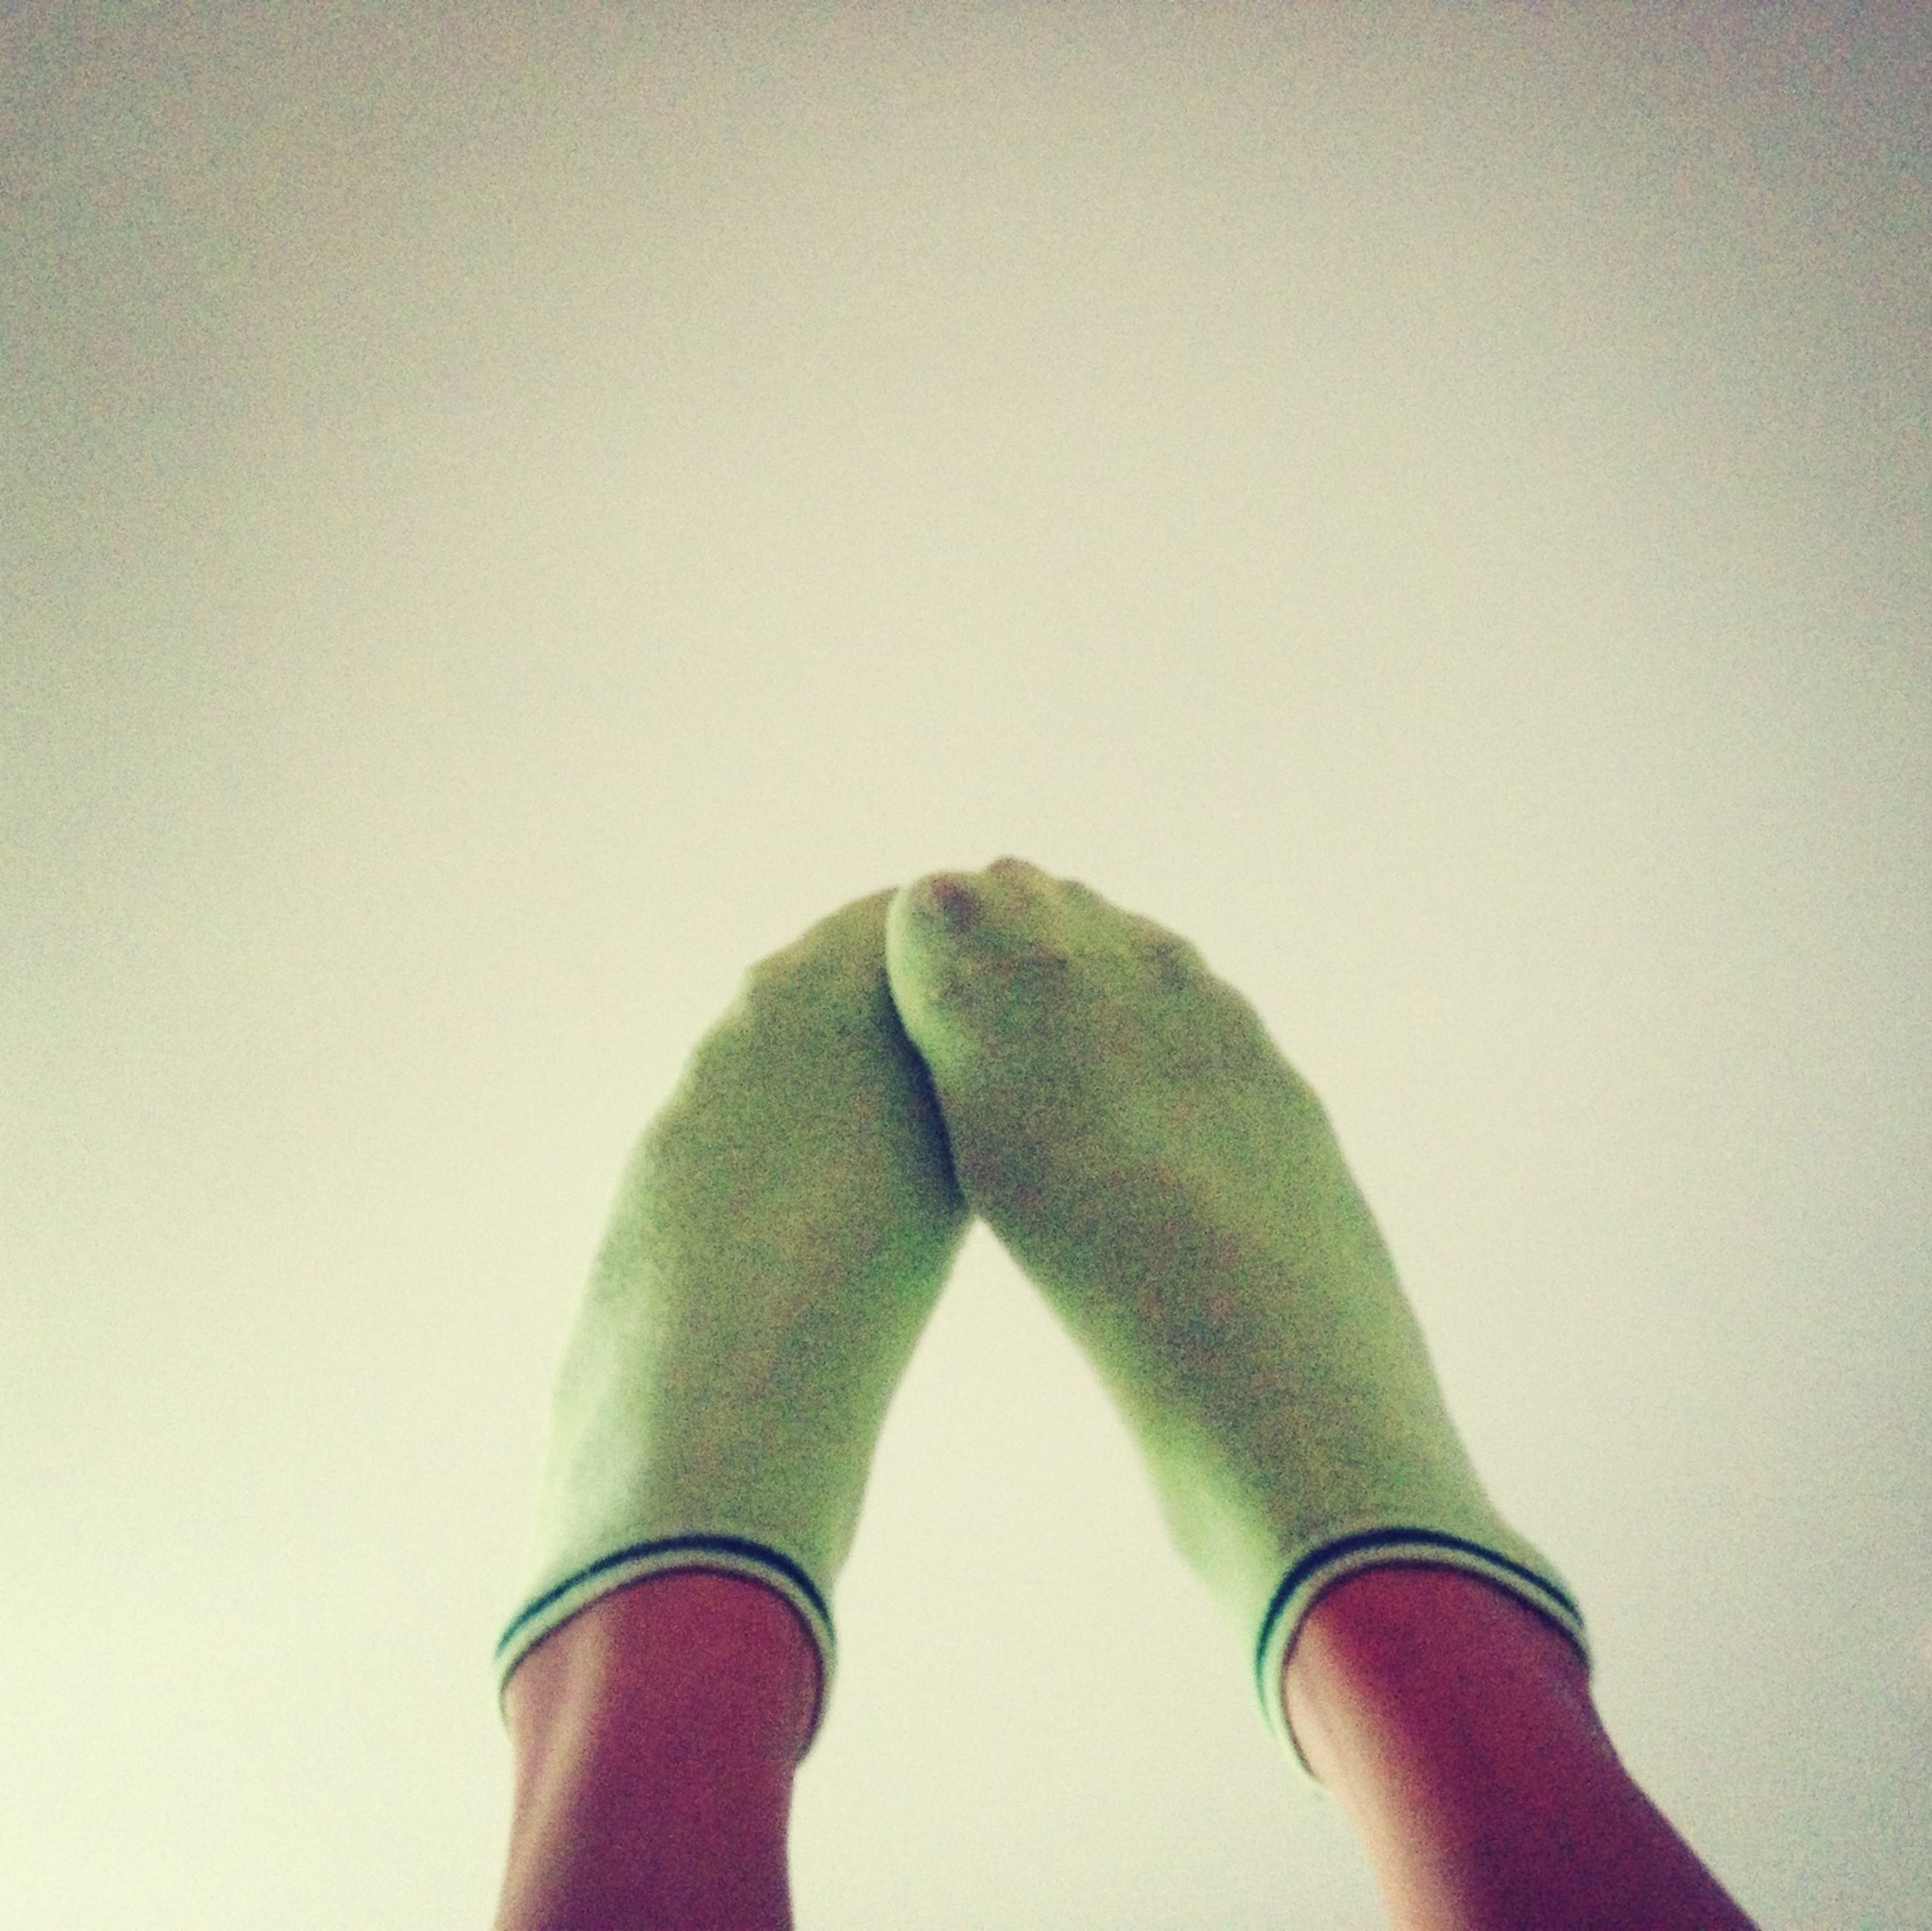 part of, personal perspective, person, close-up, cropped, copy space, shoe, low angle view, low section, green color, unrecognizable person, indoors, holding, human finger, studio shot, day